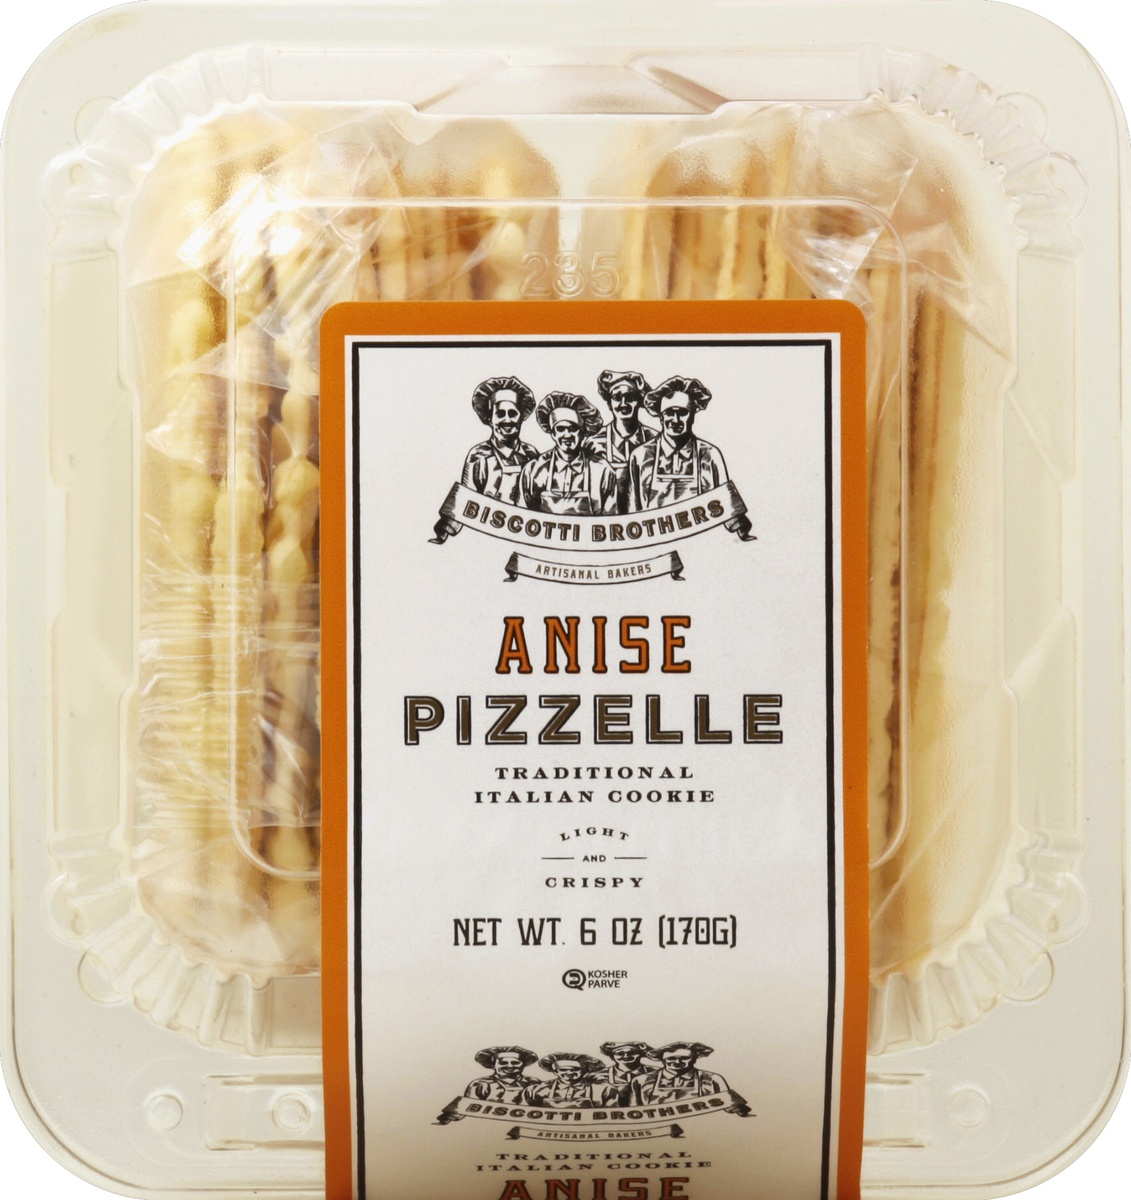 slide 2 of 4, Biscotti Brothers Bakery Anise Pizzelle,